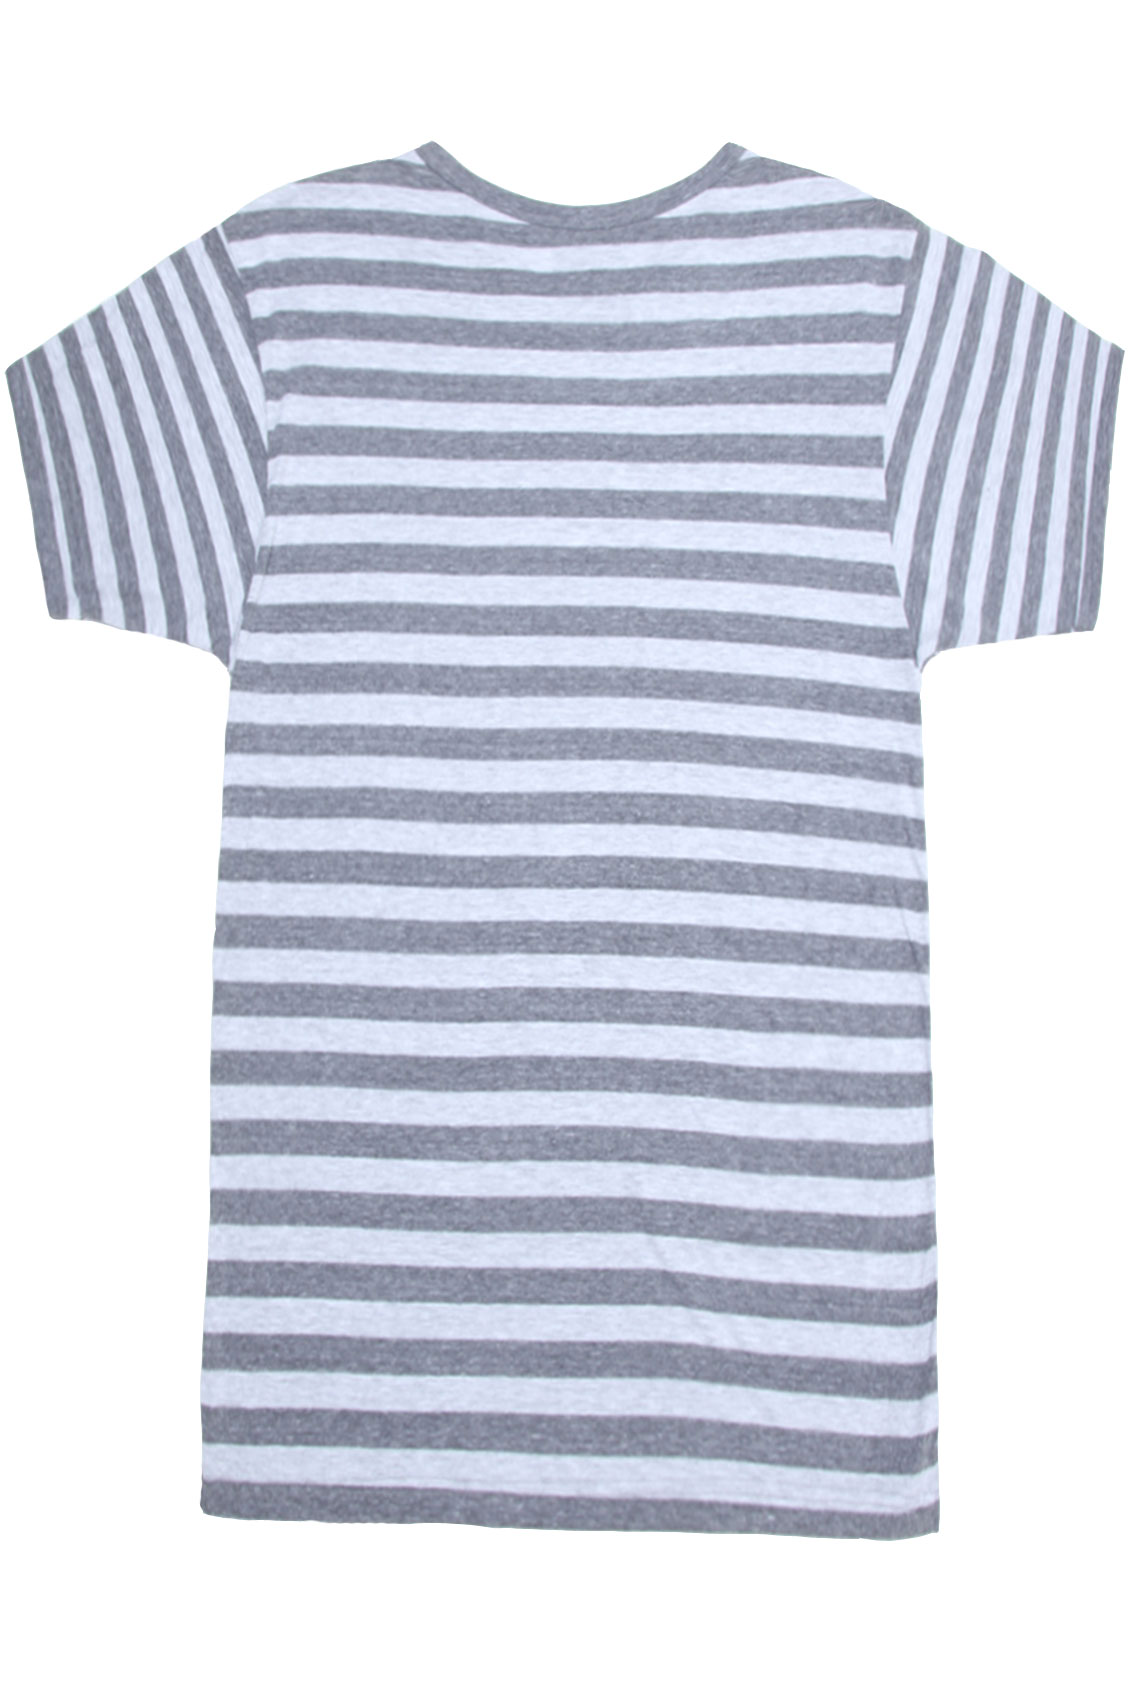 Disney couture grey marl striped mickey mouse math t shirt for Grey striped t shirt